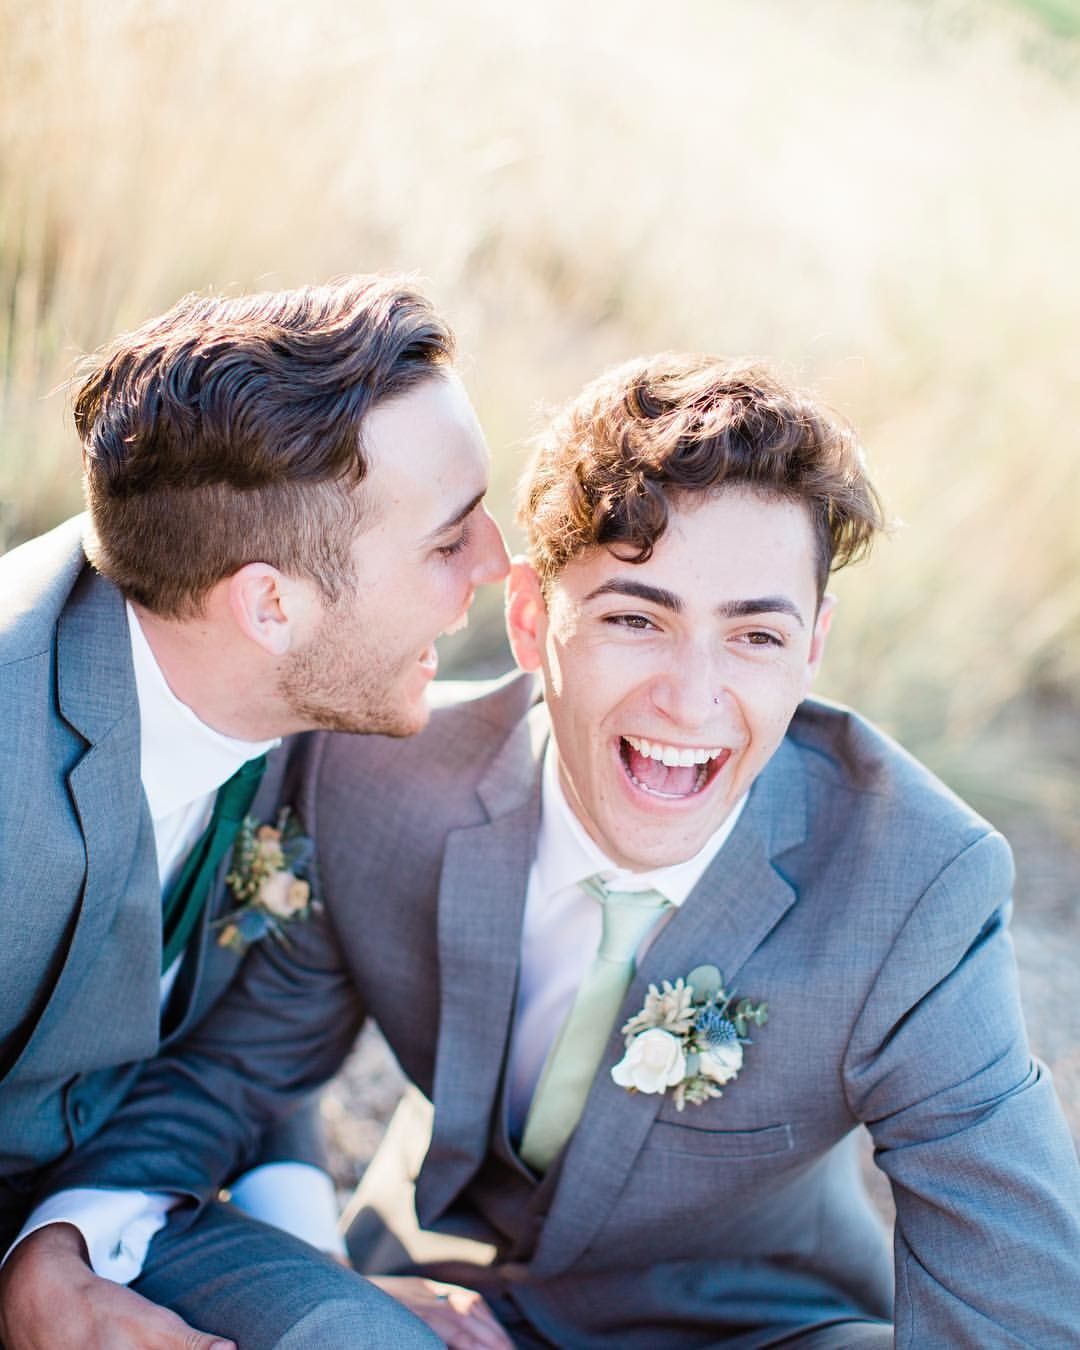 Happy happy Friday y'all!!! How darn cute are these grooms??? Nothing but JOY in this photo!! Can't wait to be able to share more